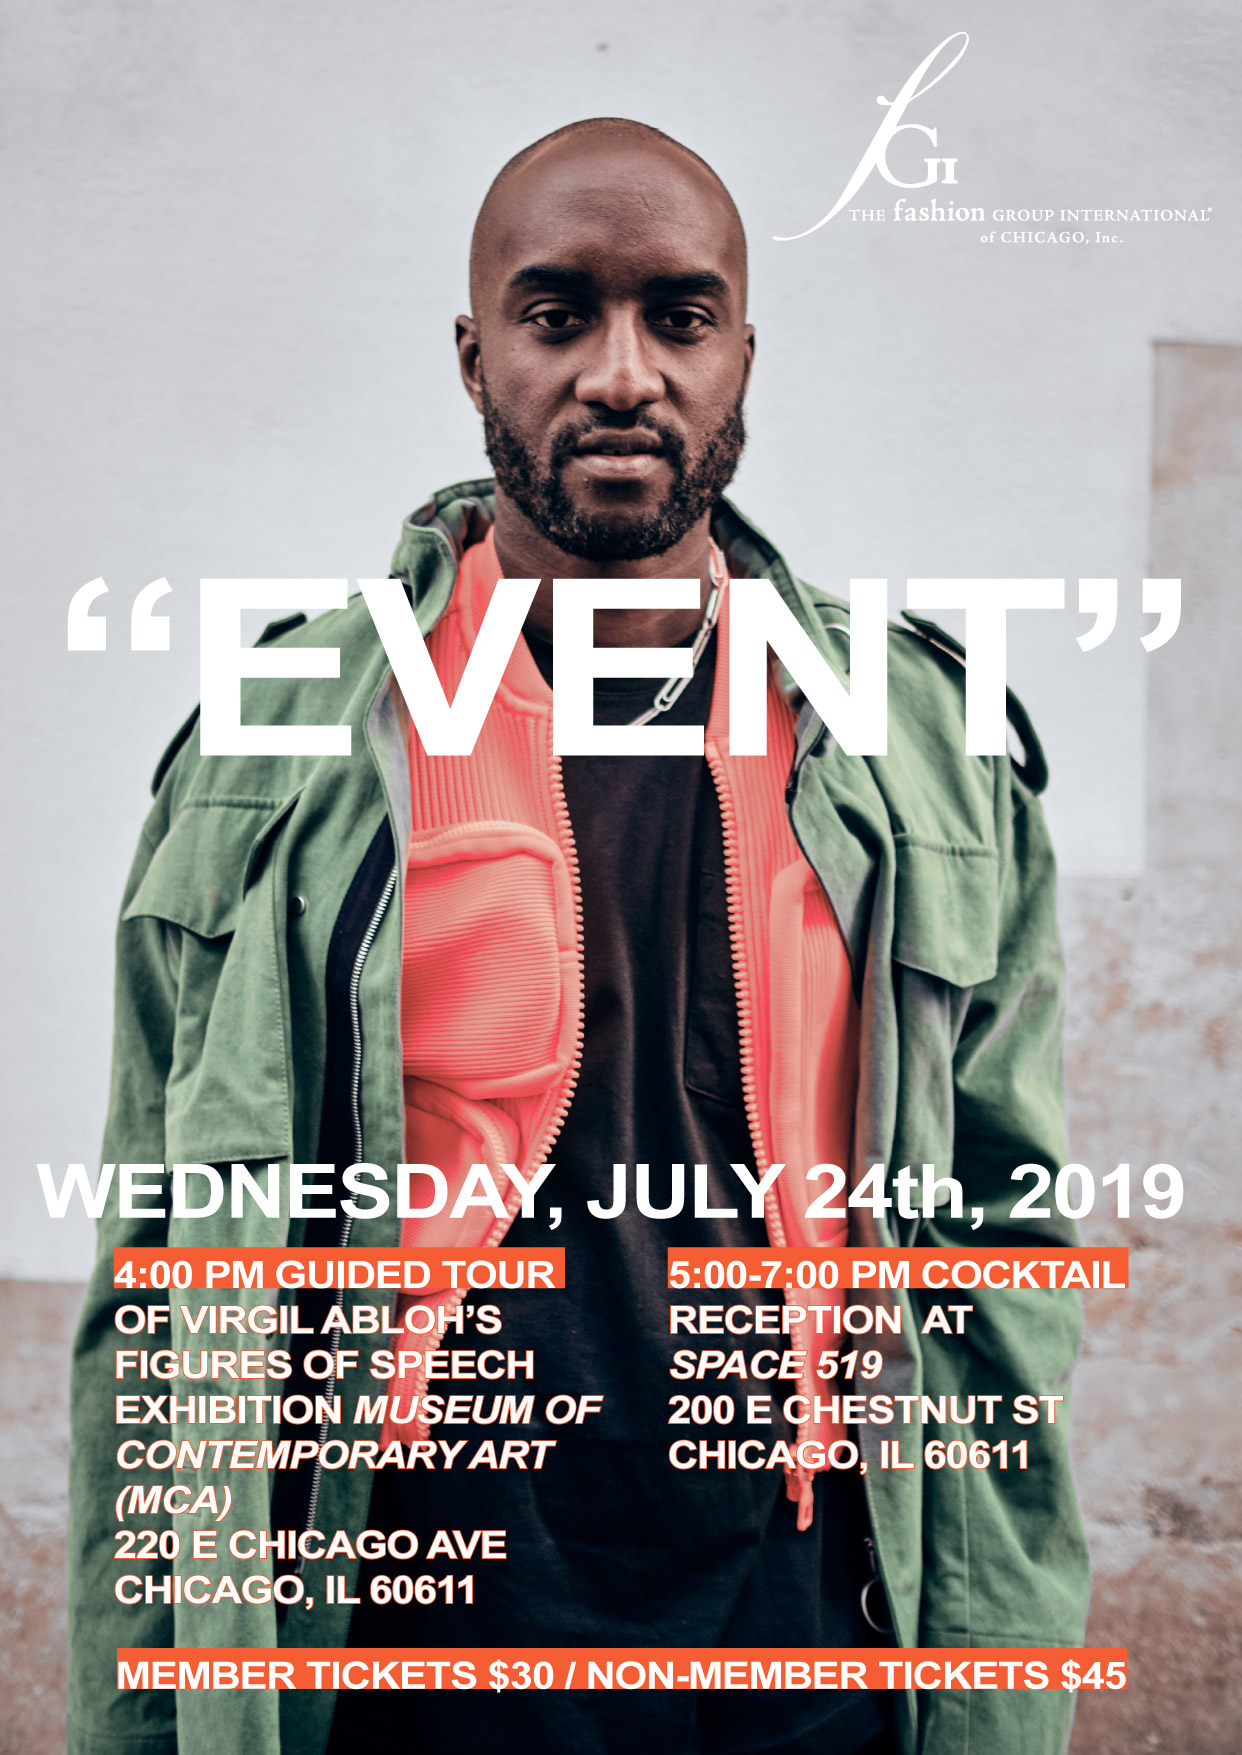 FGI Chicago Virgil Abloh Figures of Speech Space 519 Graffiti Fashion Event